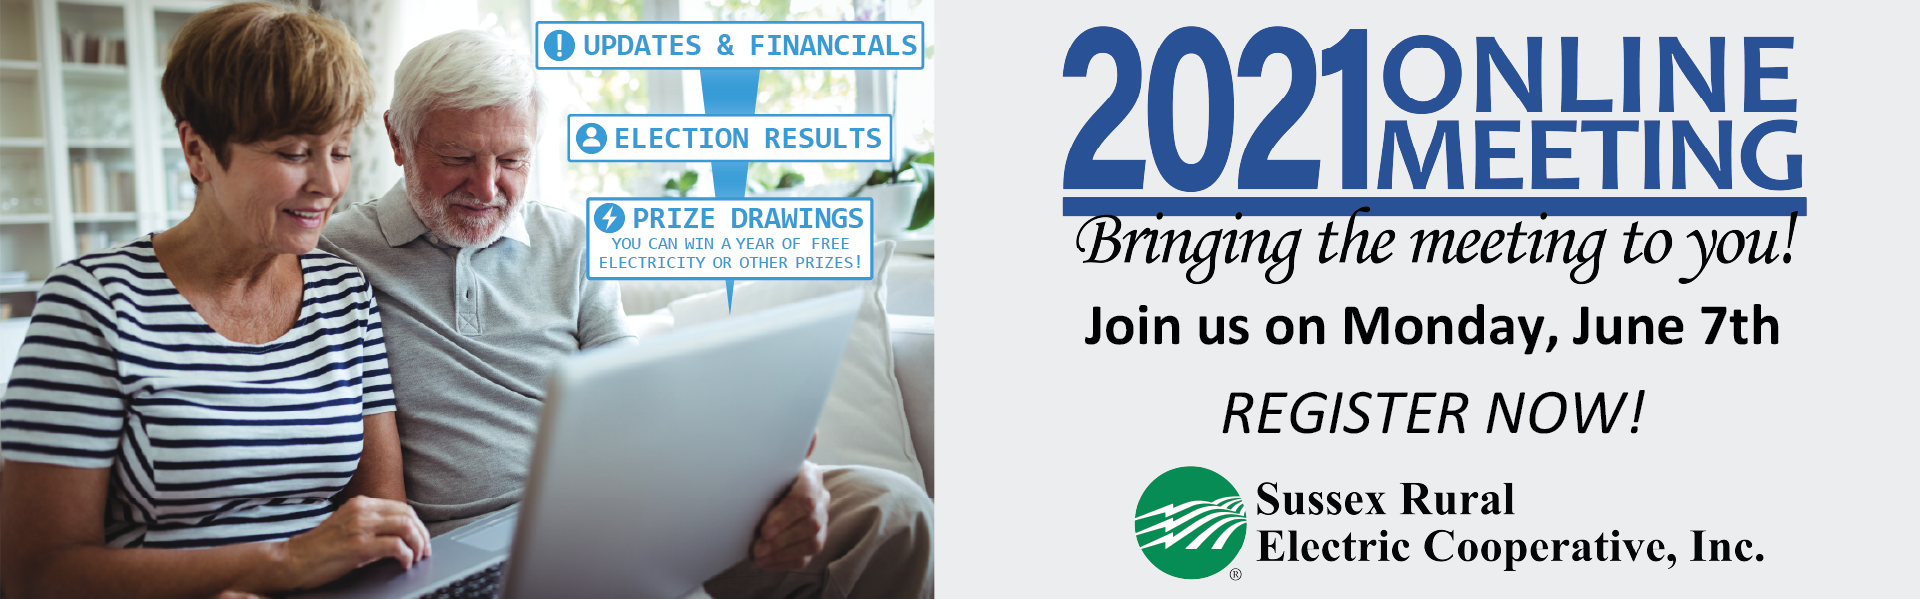 2021 Online Meeting - Bringing the Meeting to You! Register now to be eligible for our prize drawing, which includes a grand prize of a year's worth of free electricity (details, terms, and conditions found at sussexrec.com/annual-meeting)